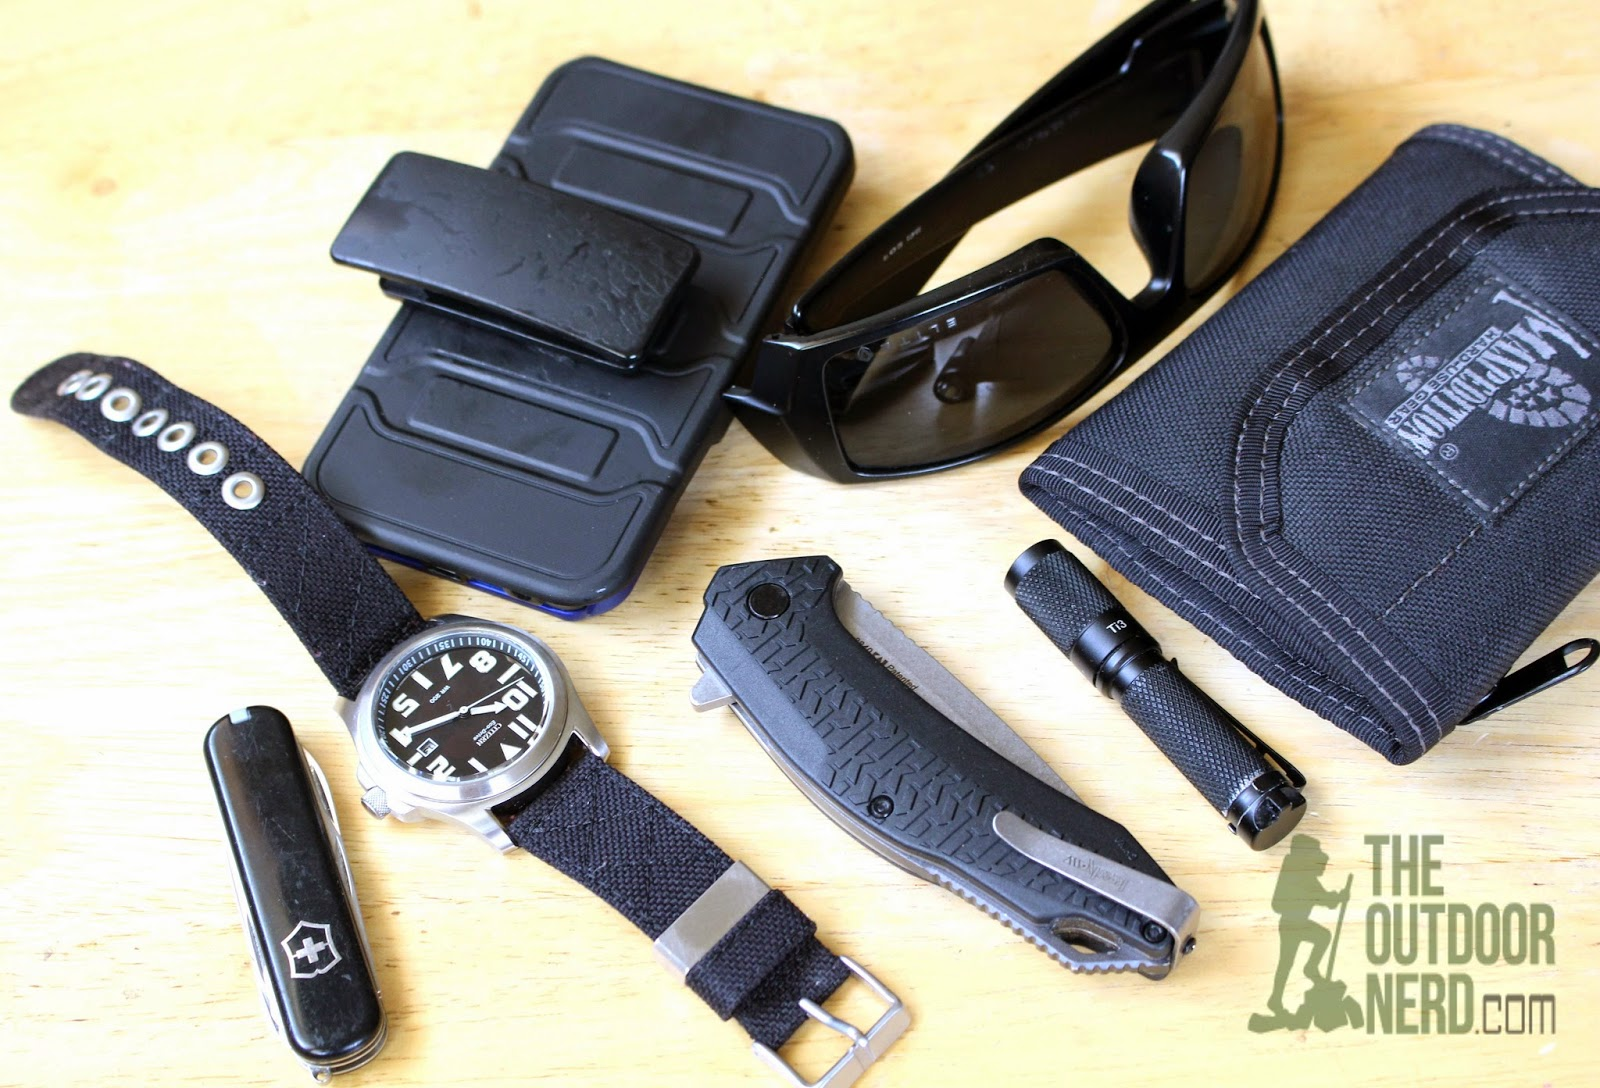 Kershaw Frefall EDC Pocket Knife - Caliper Measurement: Pocket Dump